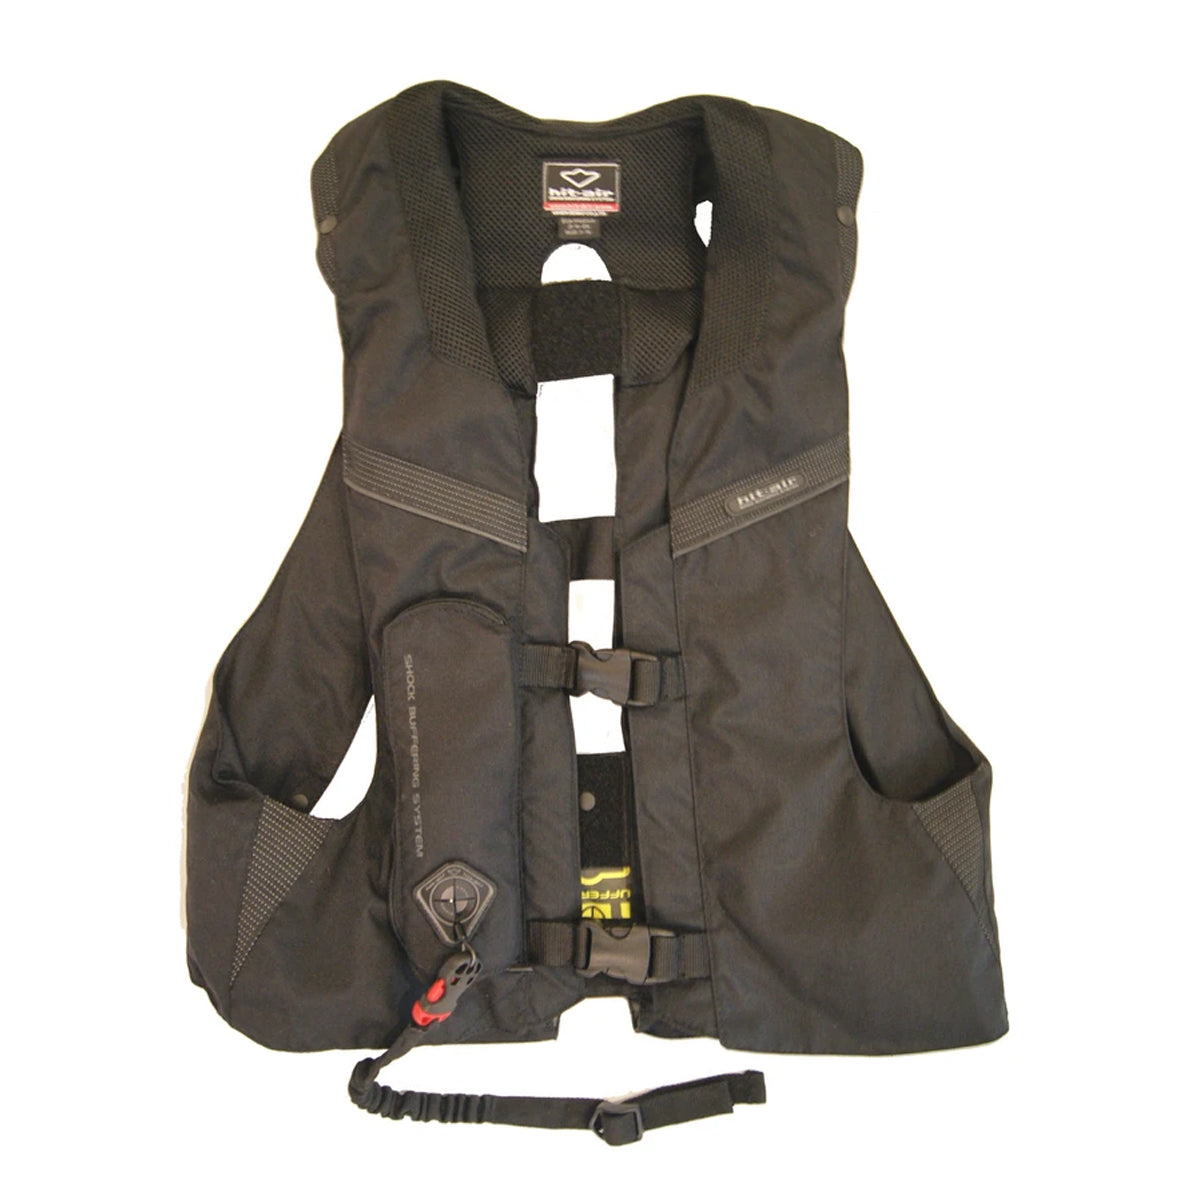 Hit Air Airbag Safety Vest -PRO